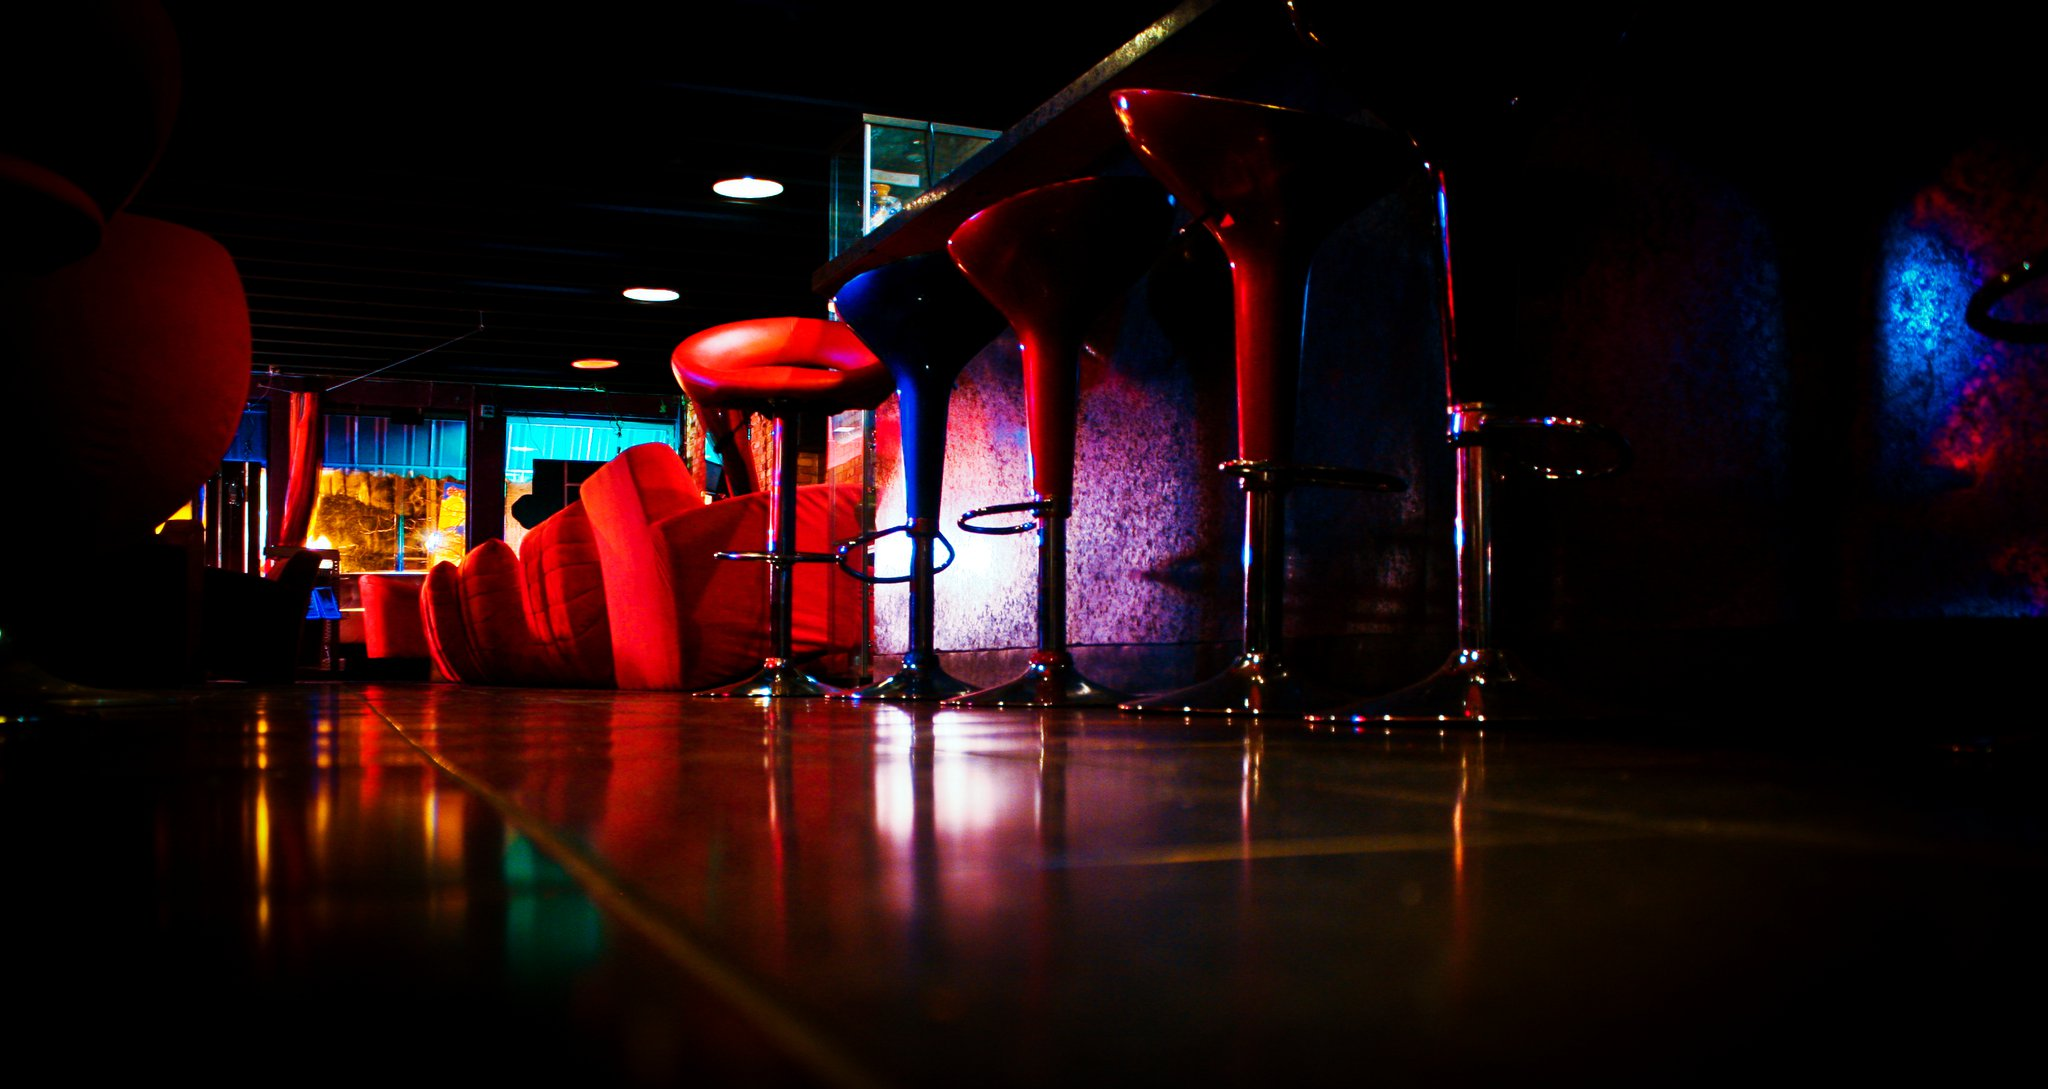 The interior of the Hookah Lounge courtesy of Hookah Lounge Day 78: Eastown Hookah Lounge